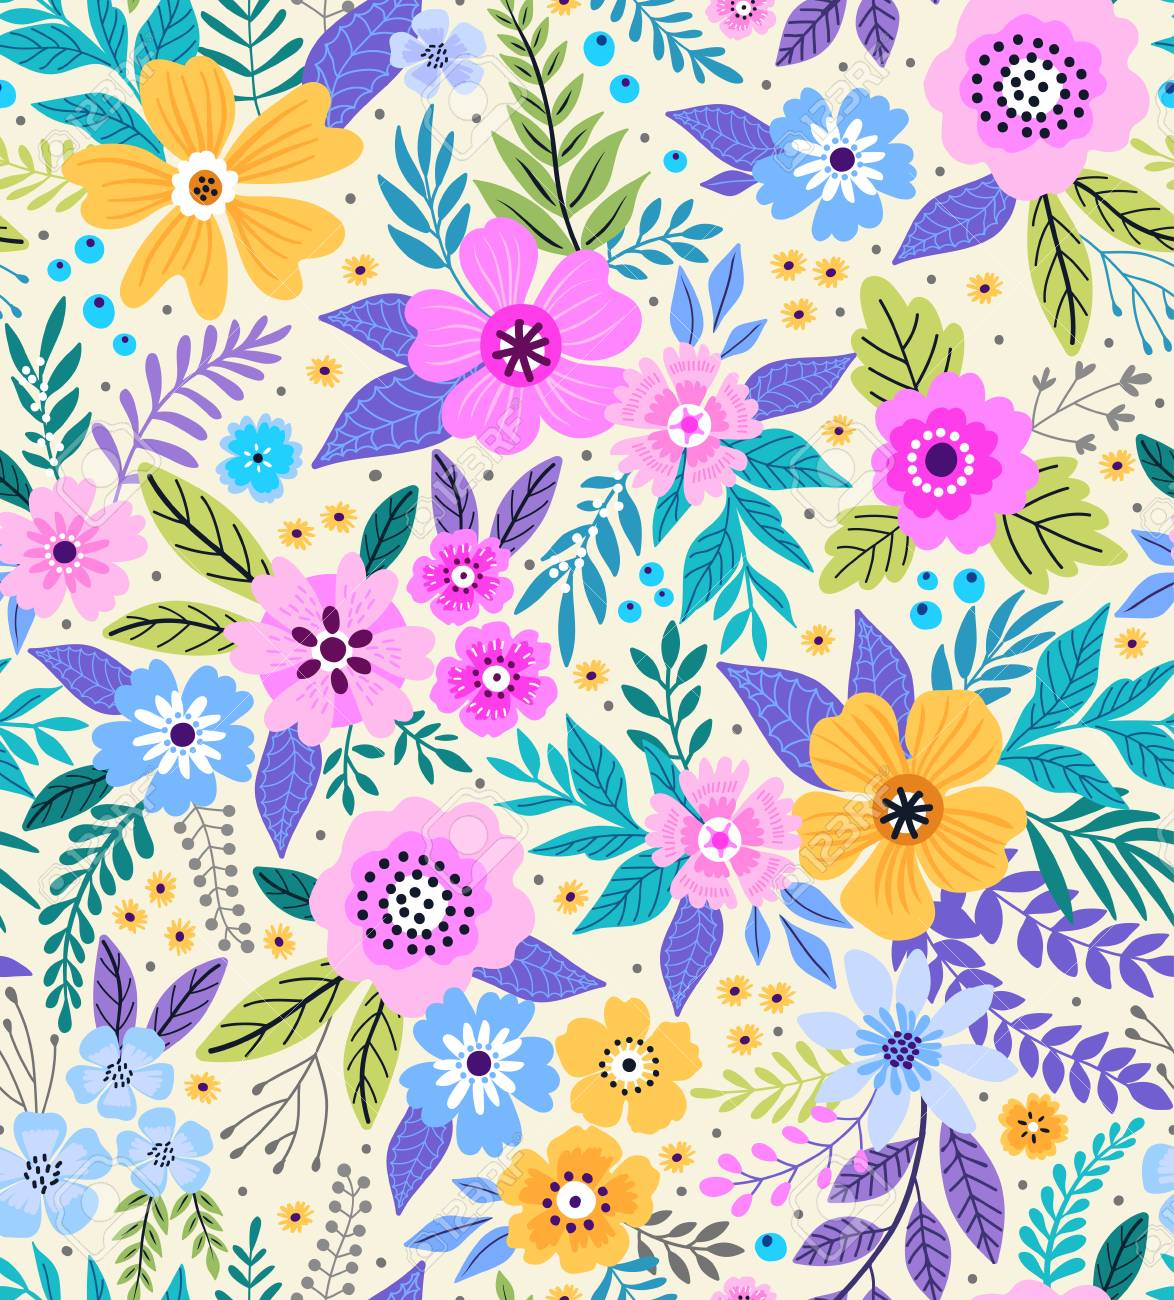 Amazing Seamless Floral Pattern With Bright Colorful Flowers